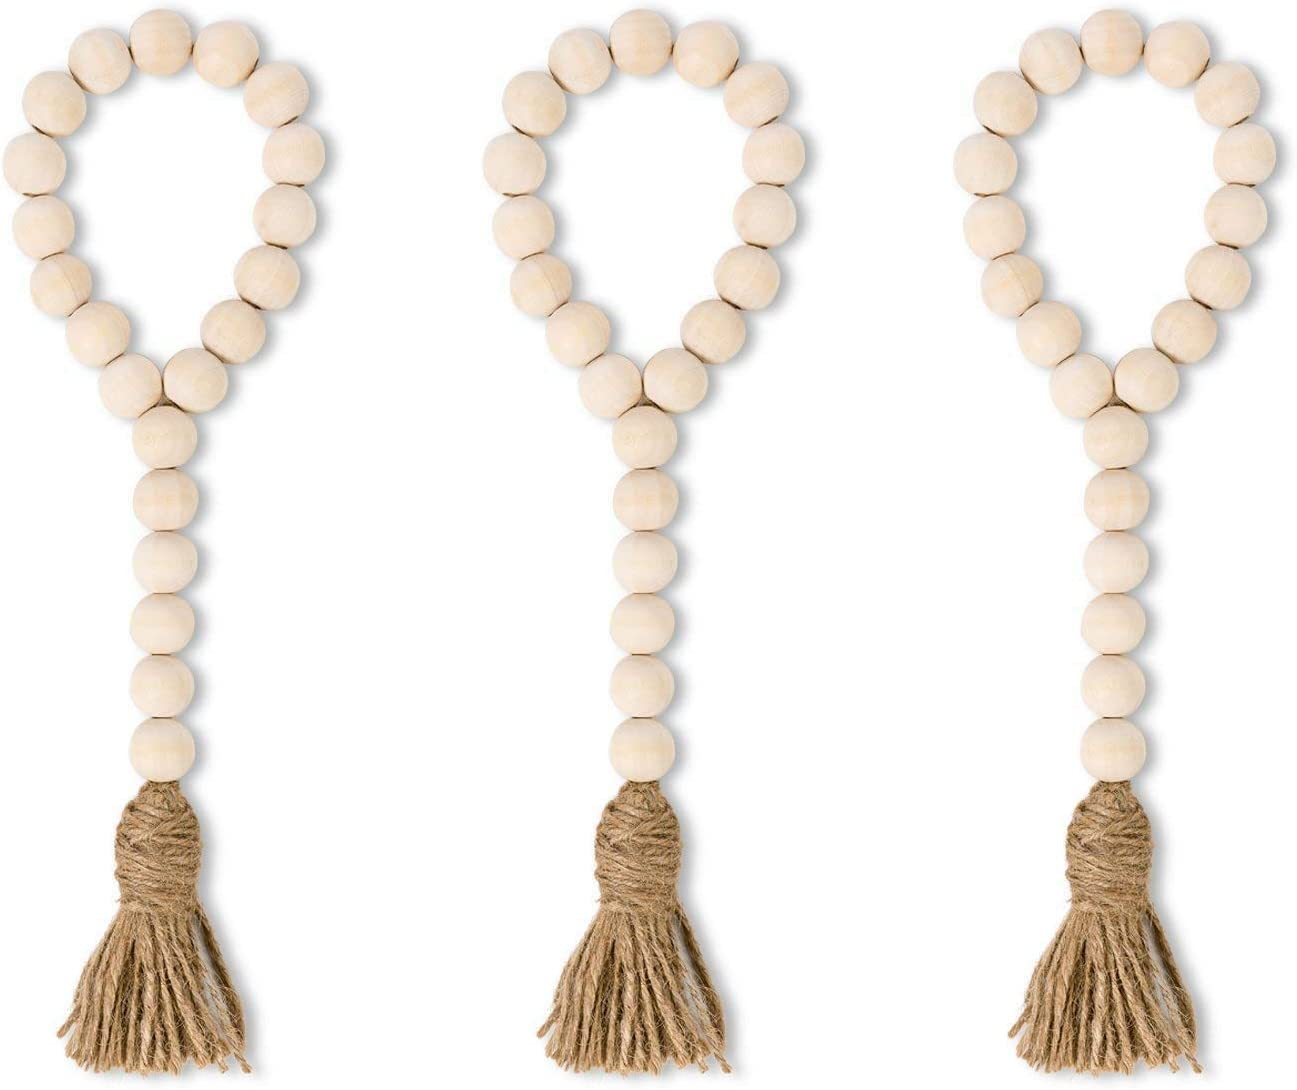 Jetec Farmhouse Wood Home Bead Garland Rustic Tassel Hanging Garland Natural Prayer Bead Garland Farmhouse Wall Hanging with Home Tag for Farmhouse Home Room Decorations